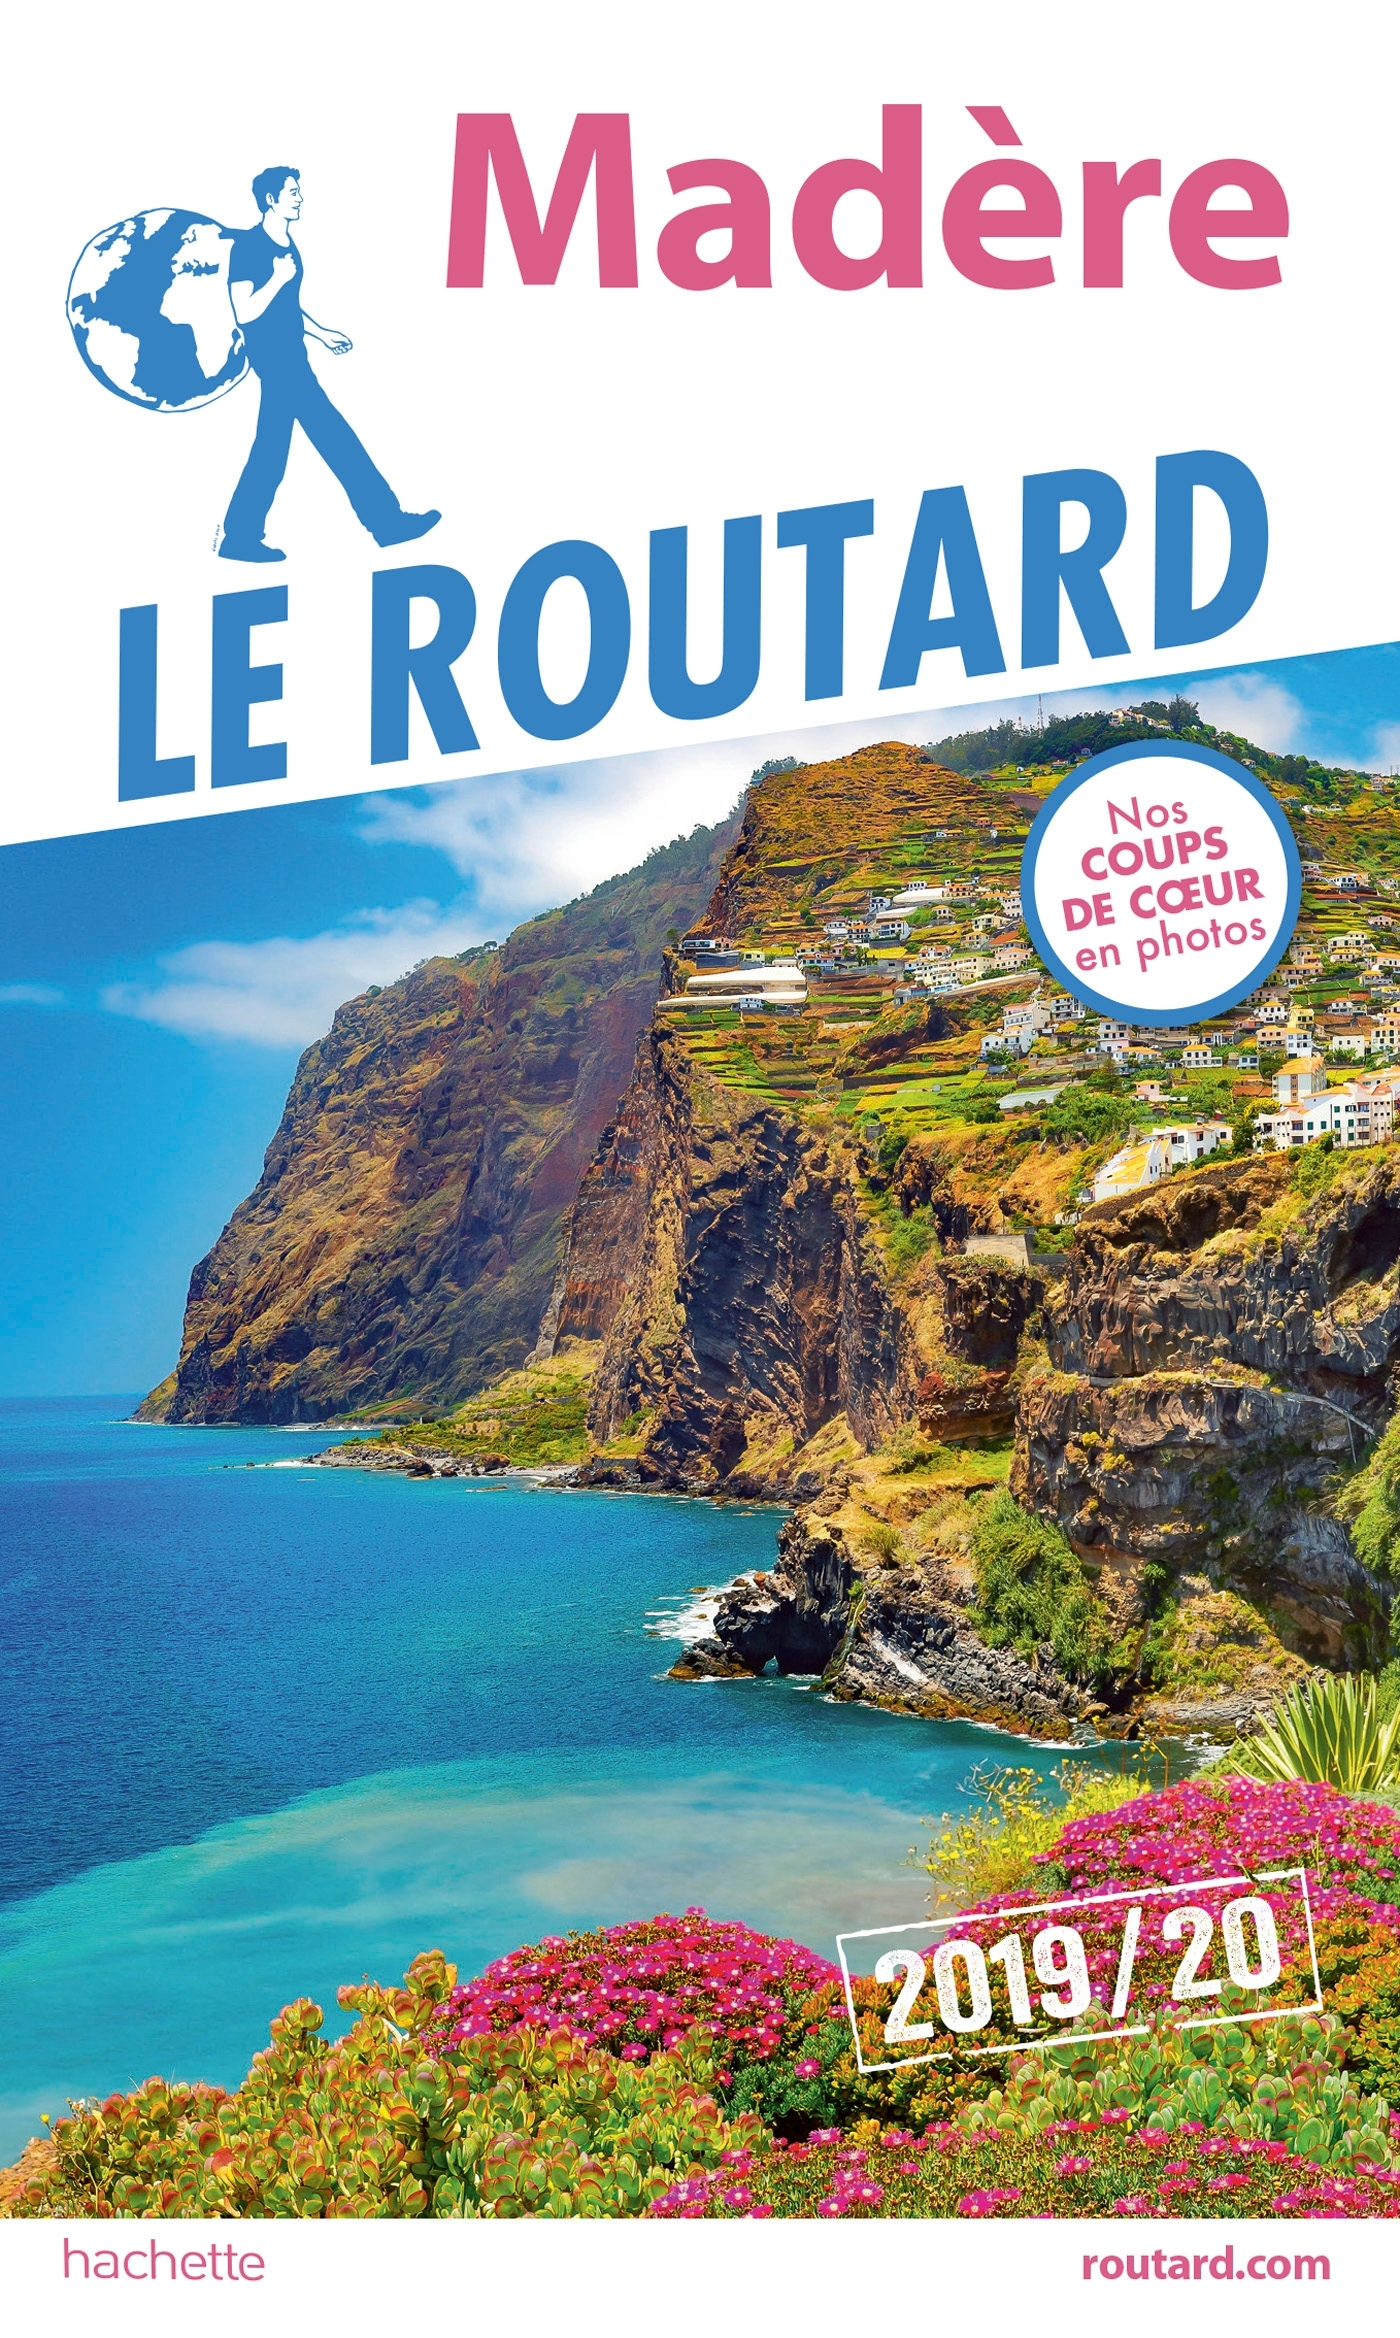 GUIDE DU ROUTARD MADERE 2019/20